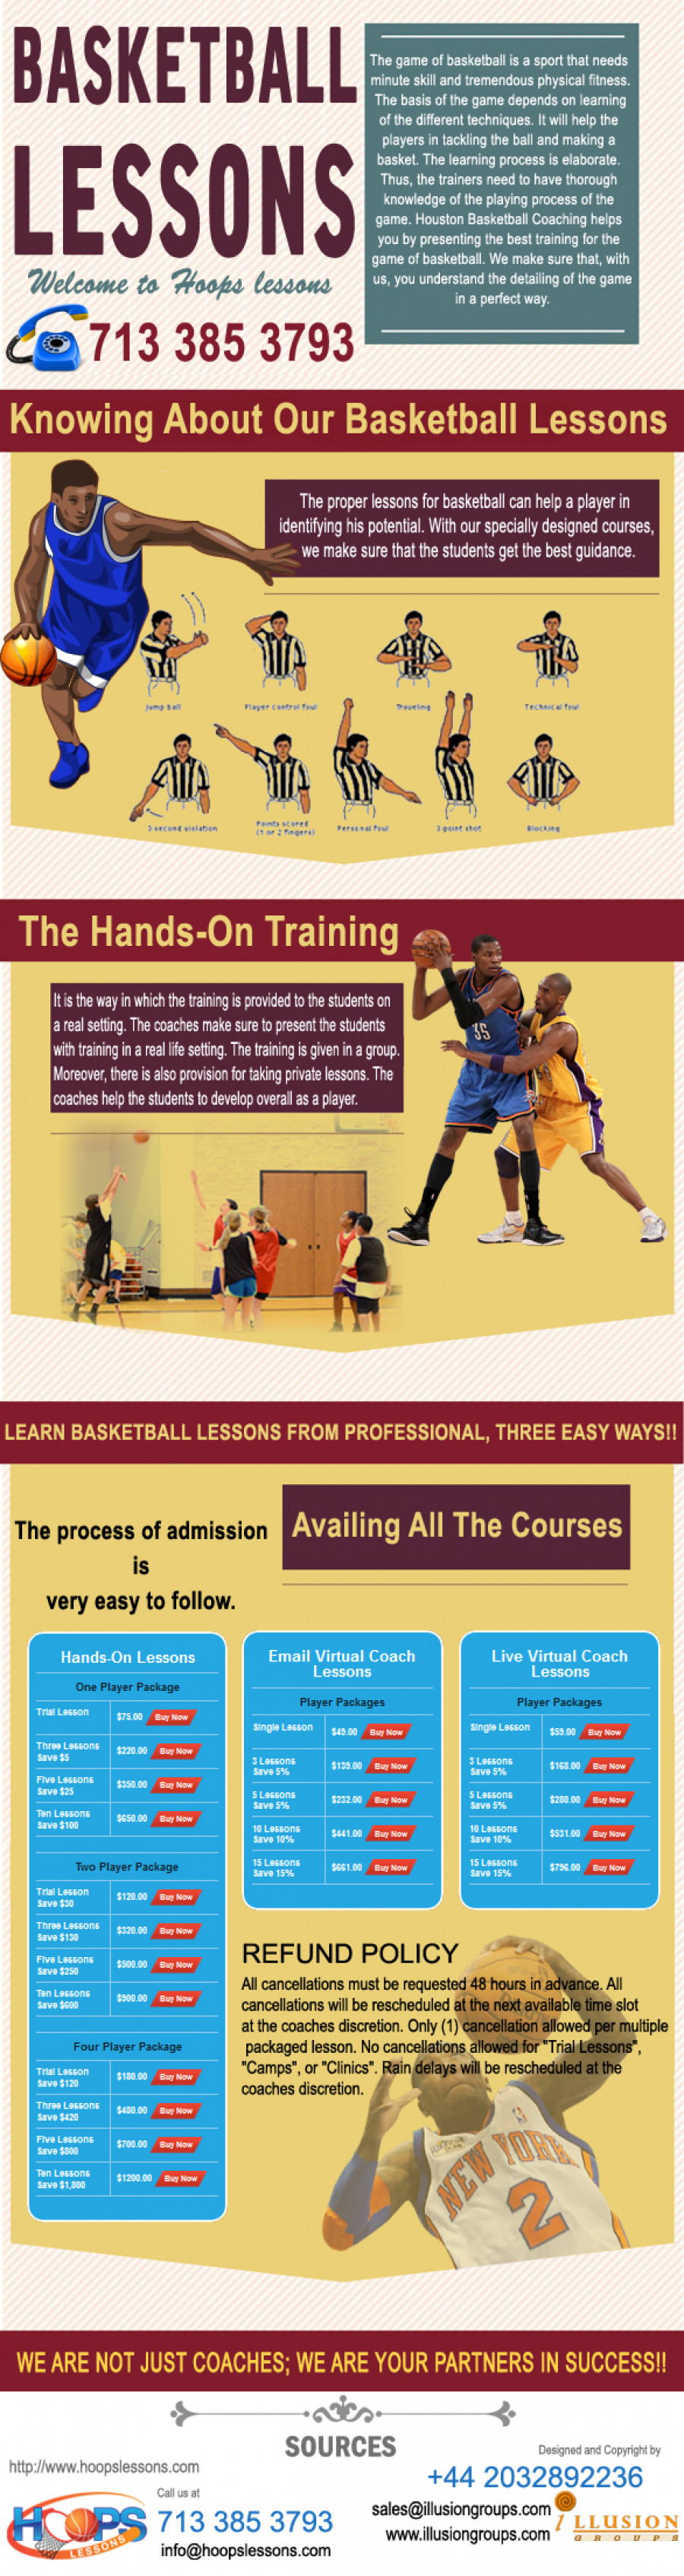 214145? w=900 - Top 5 Reasons to Play Basketball